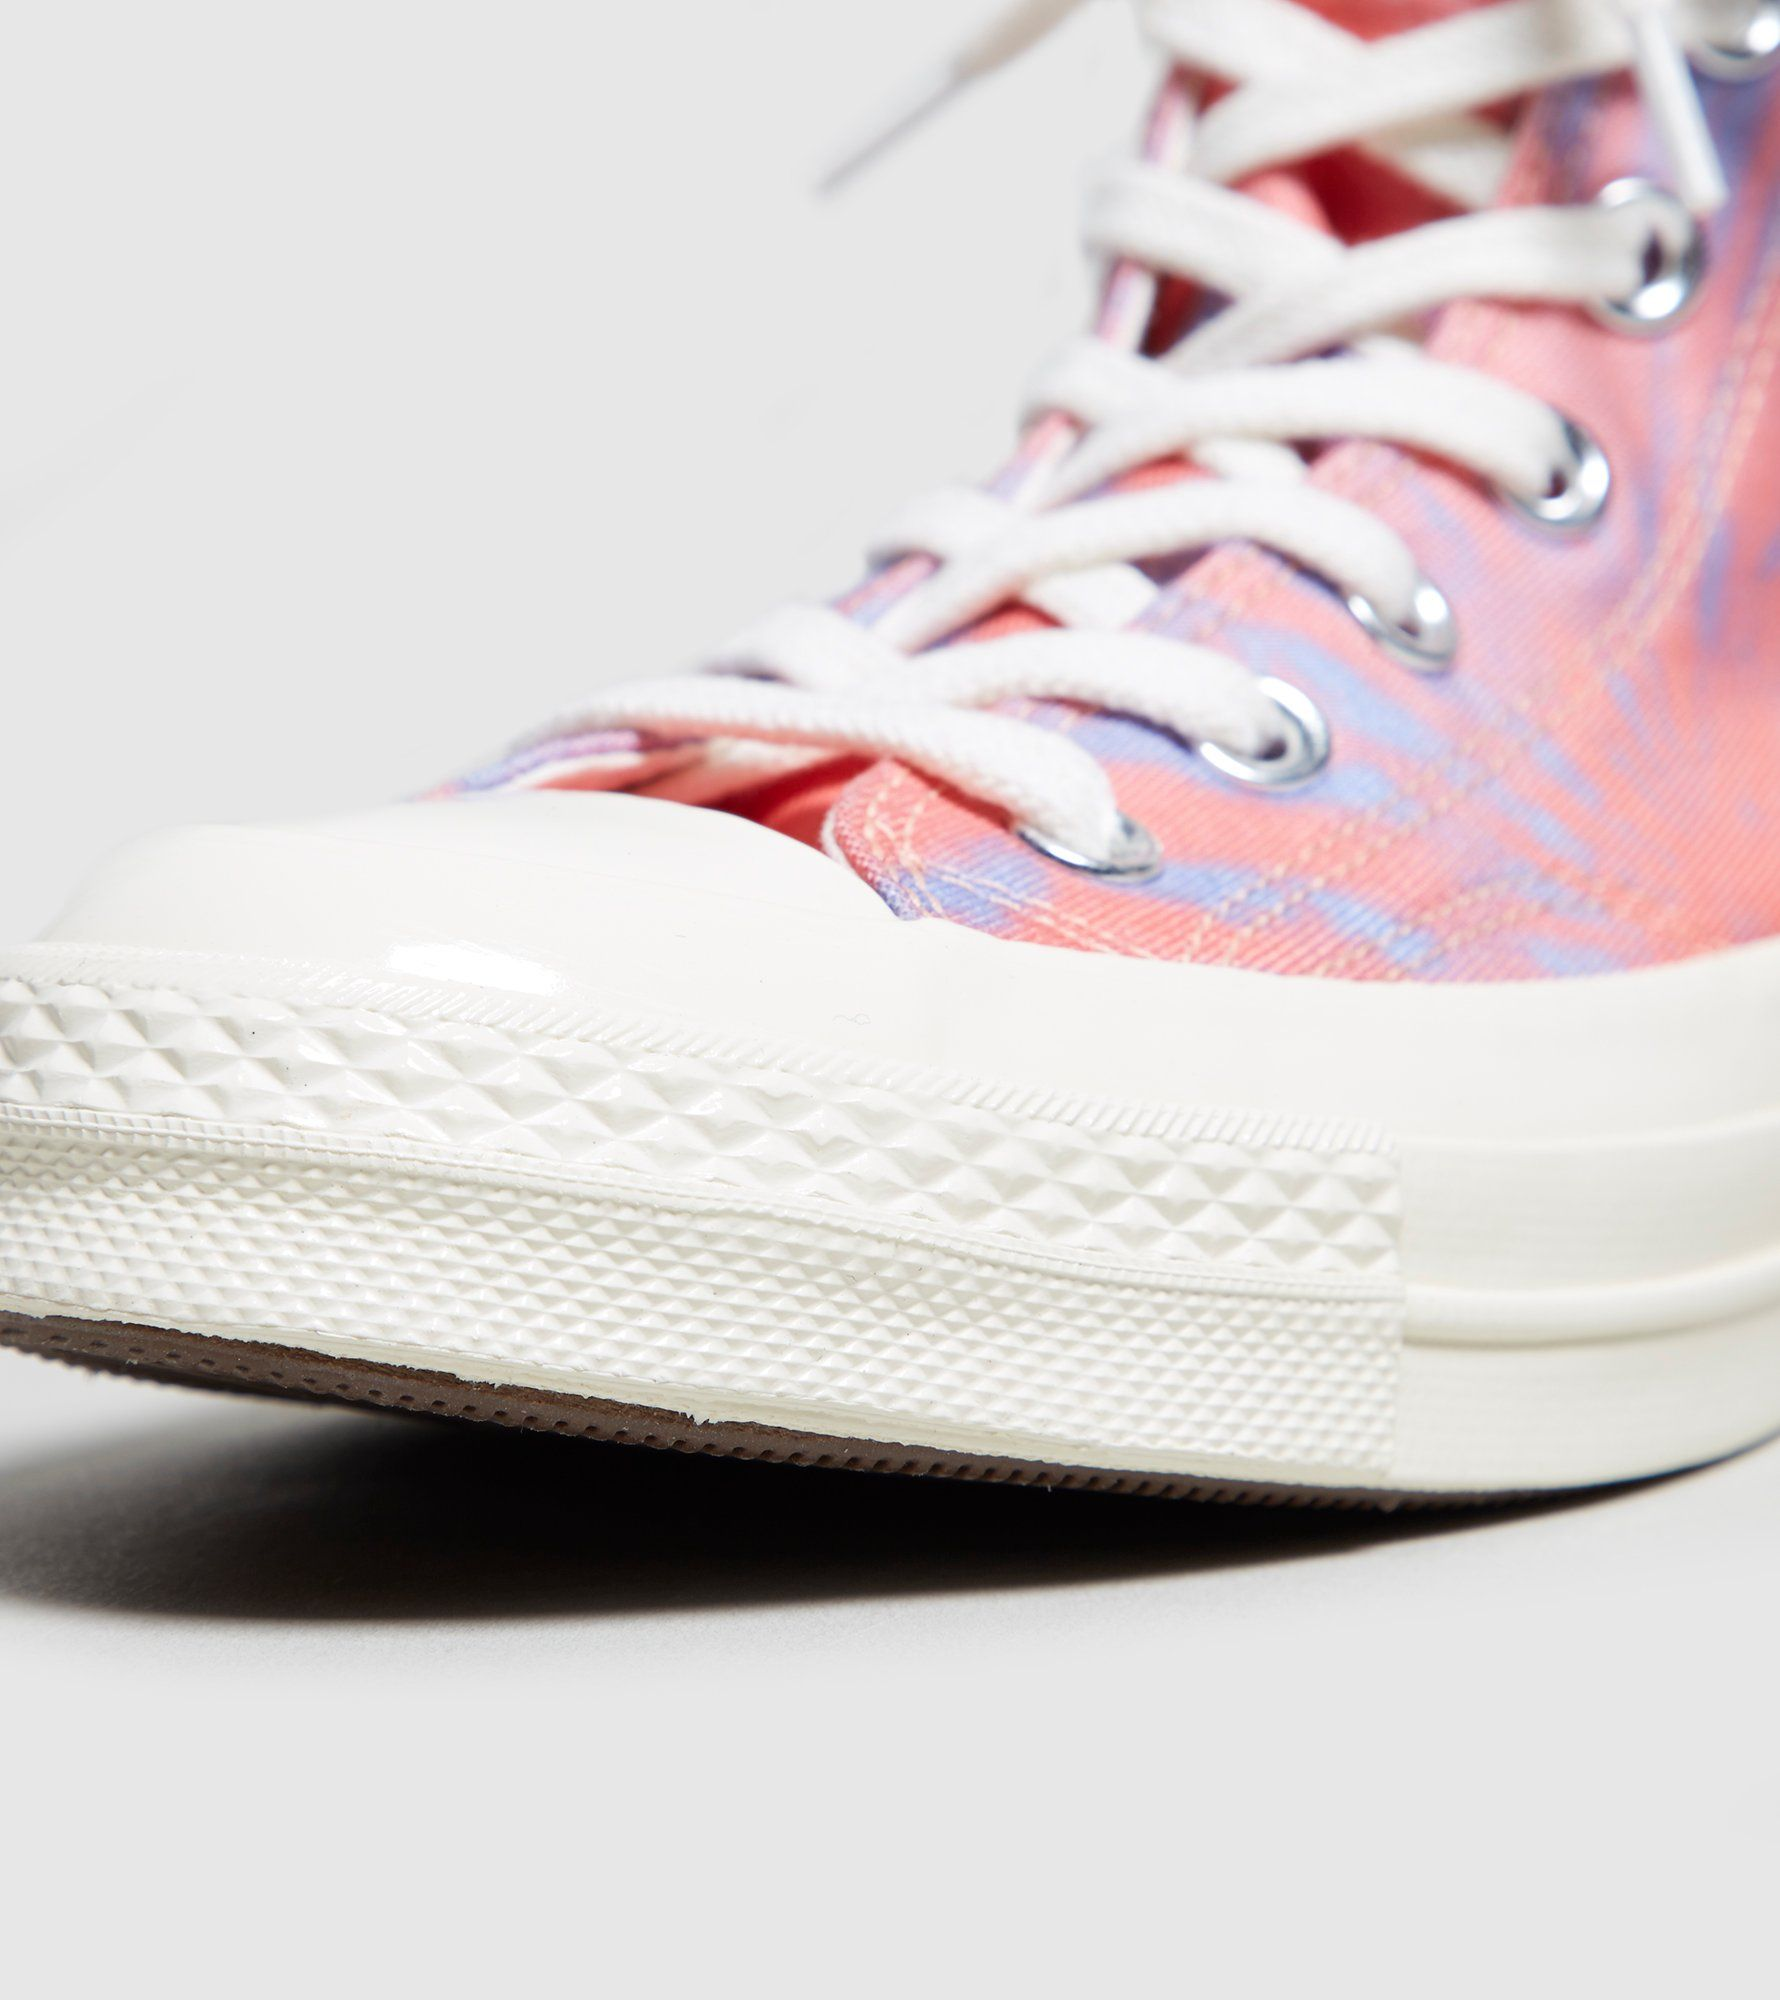 Converse Chuck Taylor All Star 70's Women's